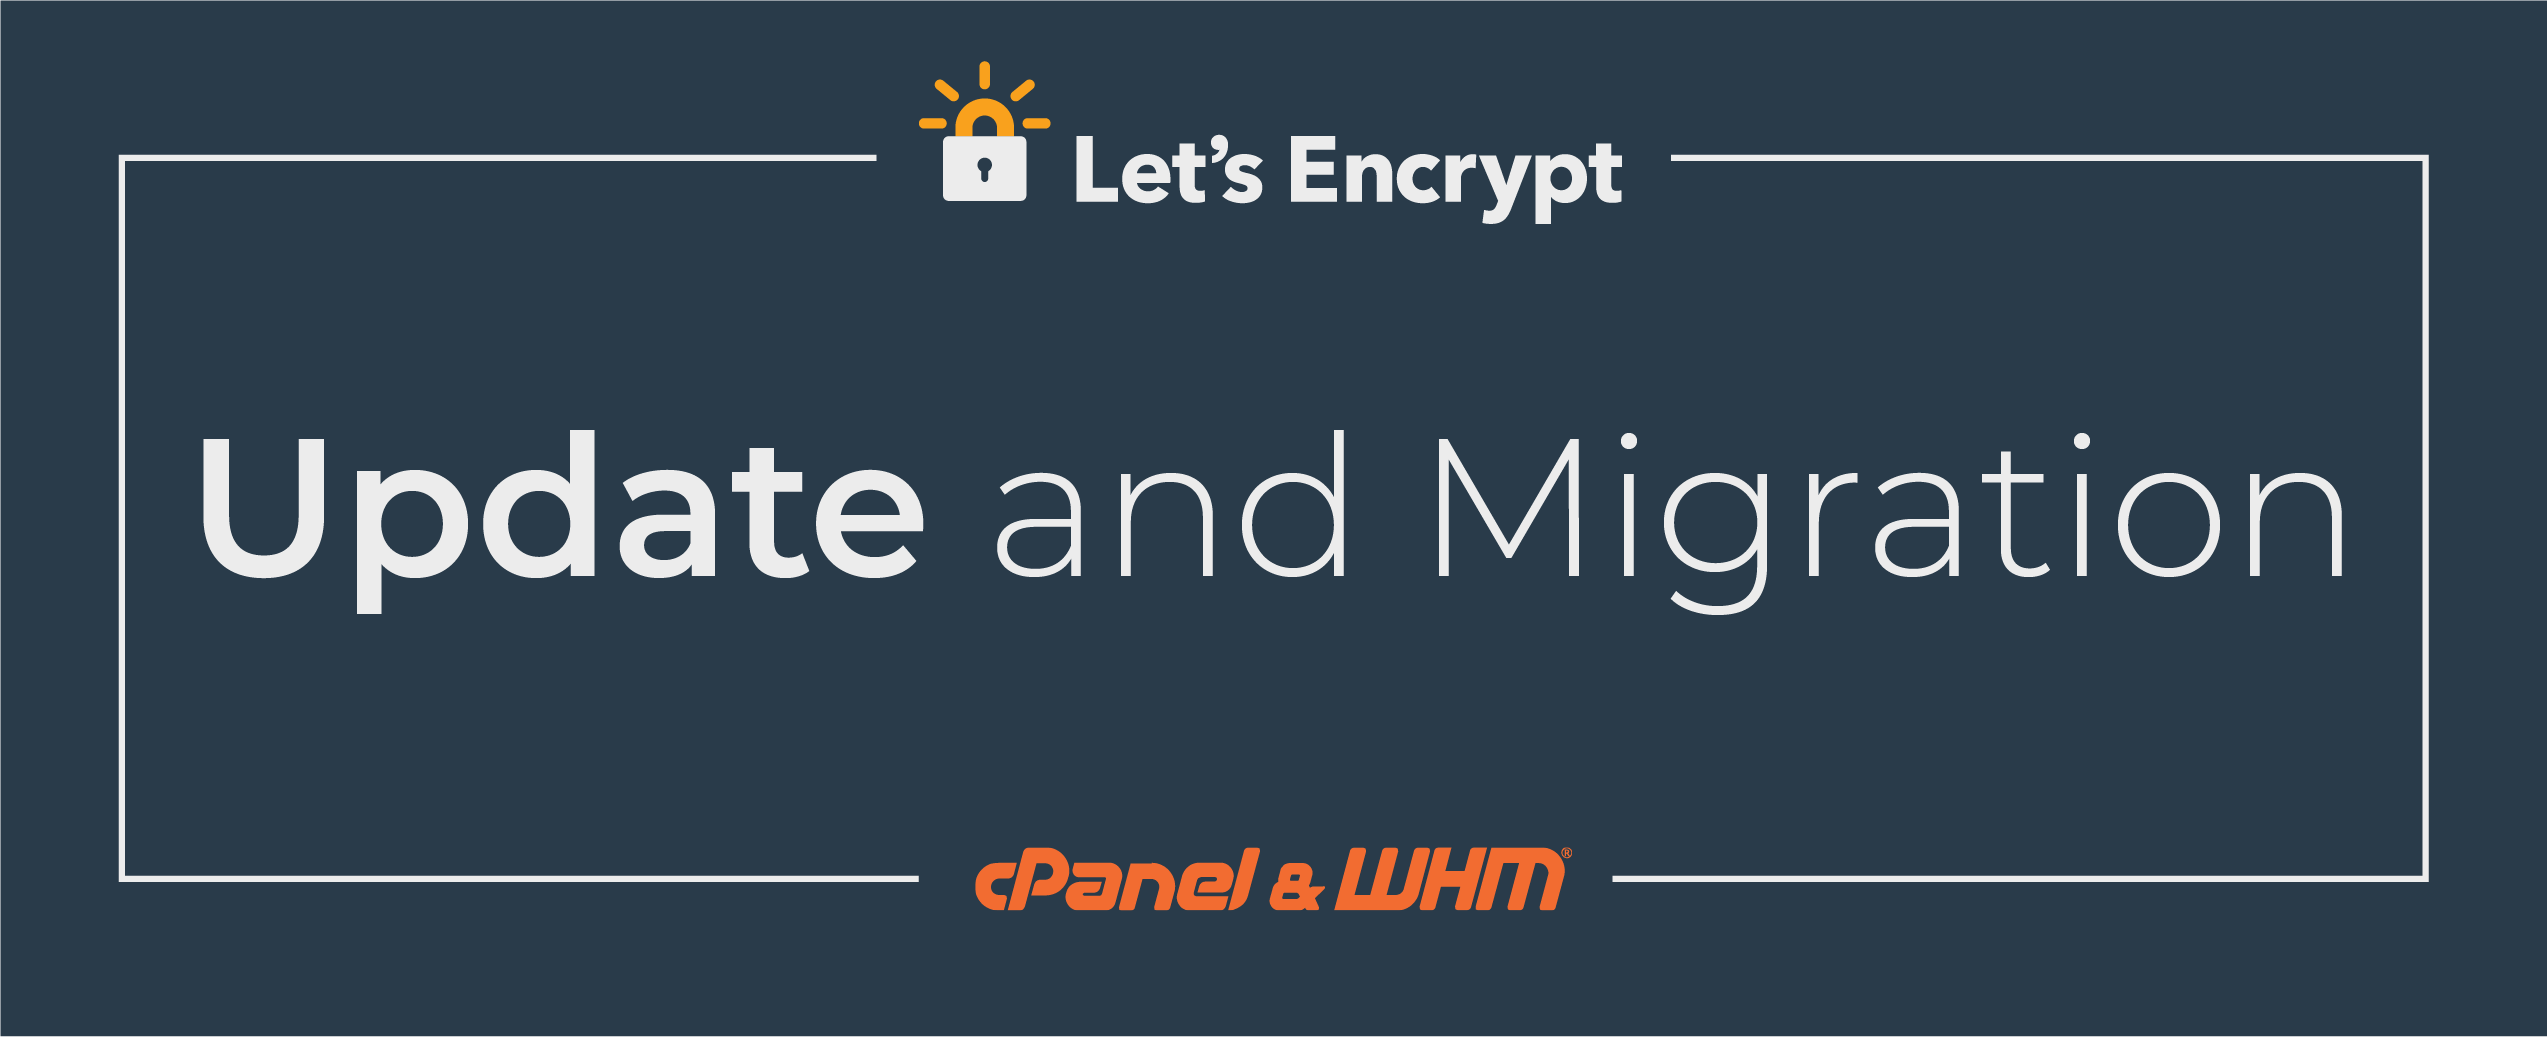 Let's Encrypt Update and Migration